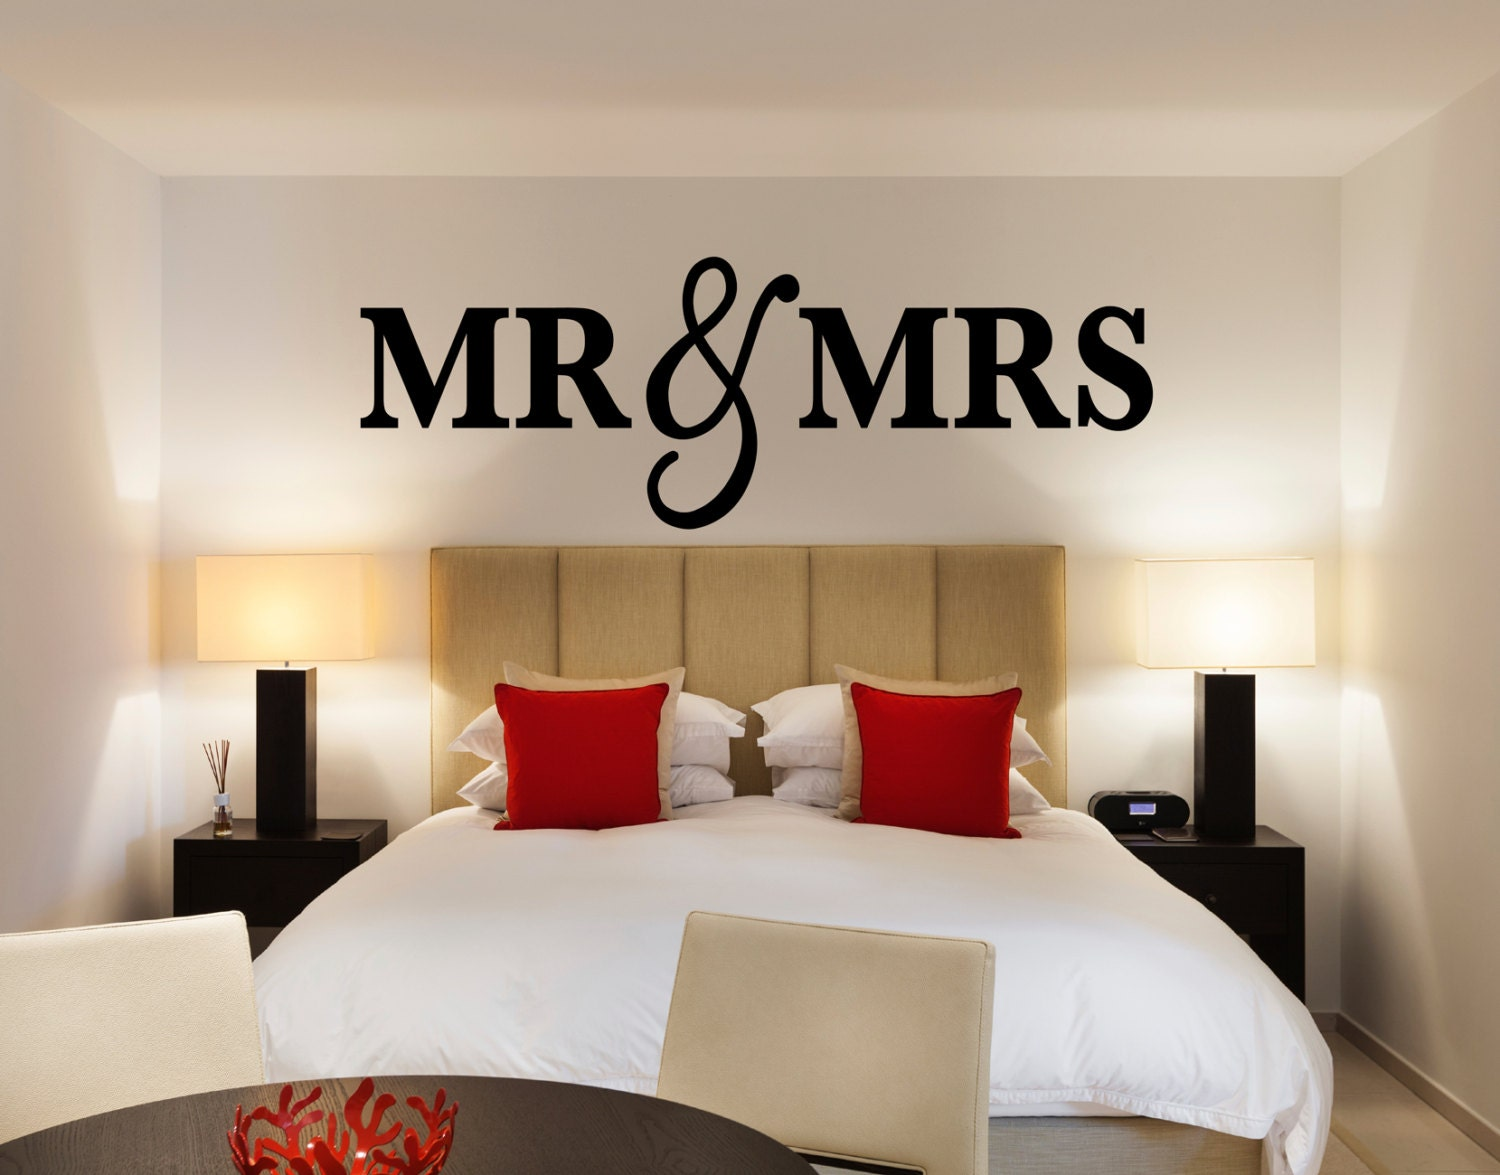 Mr mrs wall sign for bedroom decor mr and mrs sign for for Sign decoration